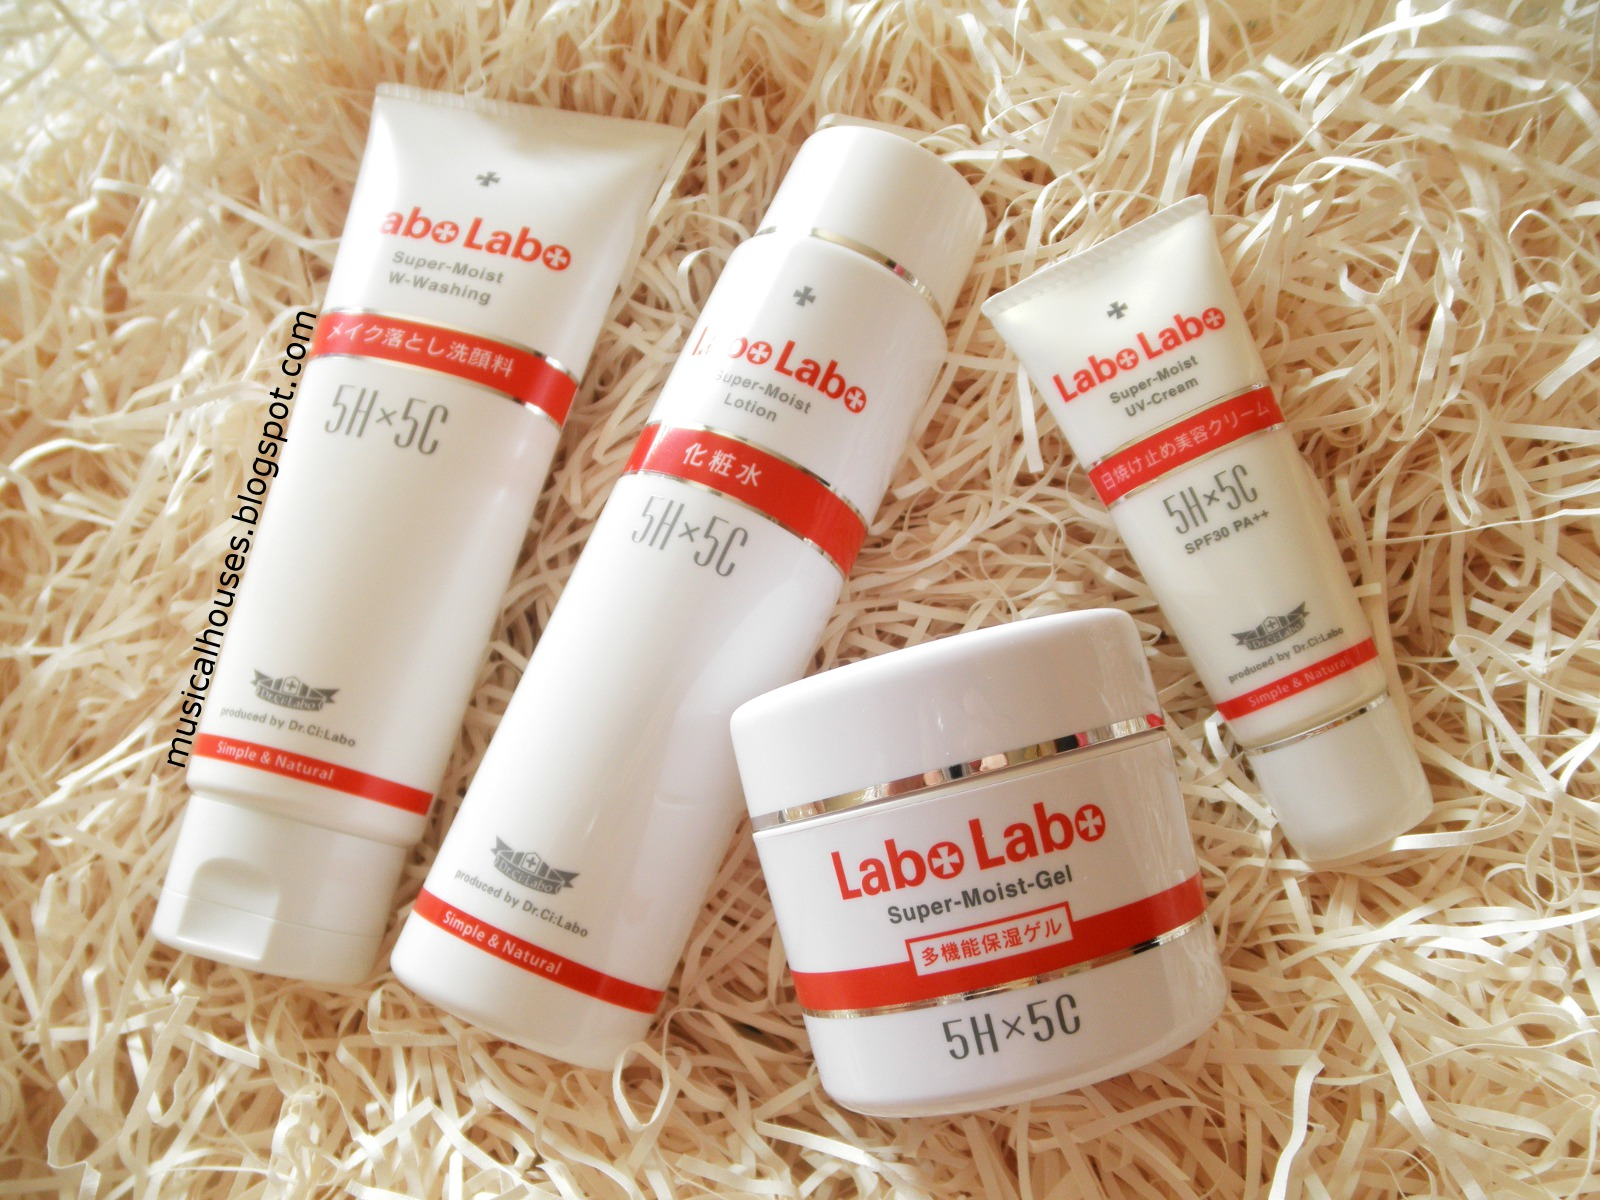 Labo Labo Dr Ci Labo Super Moist 5H5C Skincare Review